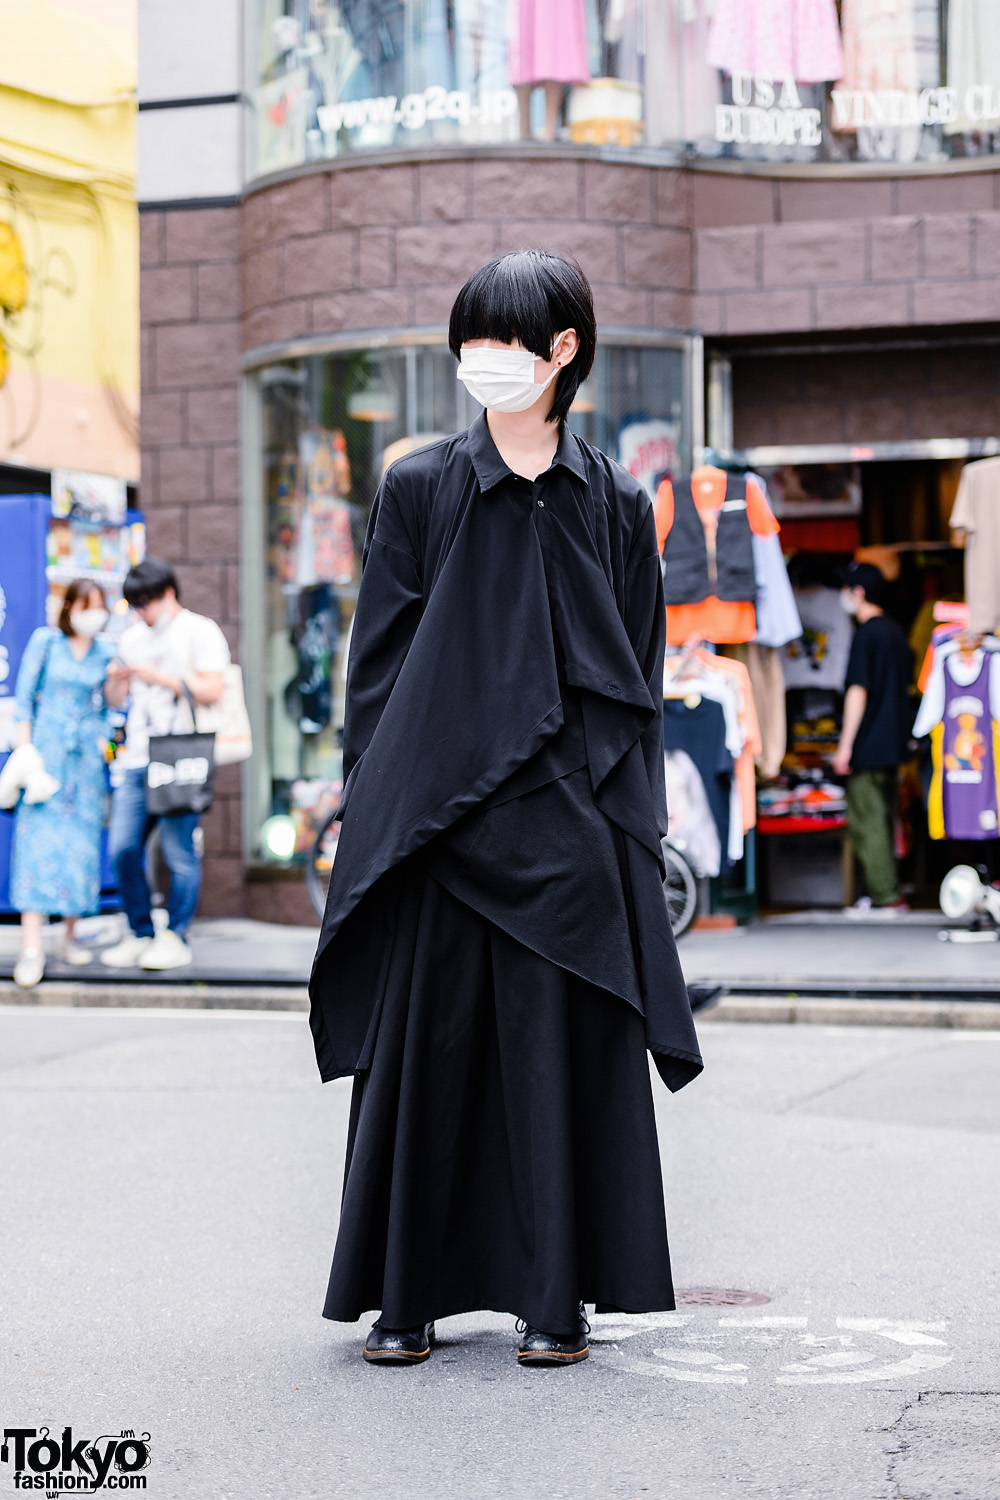 Monochrome Minimalist GGD Tokyo Street Style in Harajuku w/ Face Mask, Asymmetrical Top, Maxi Skirt & Foot Style Boots